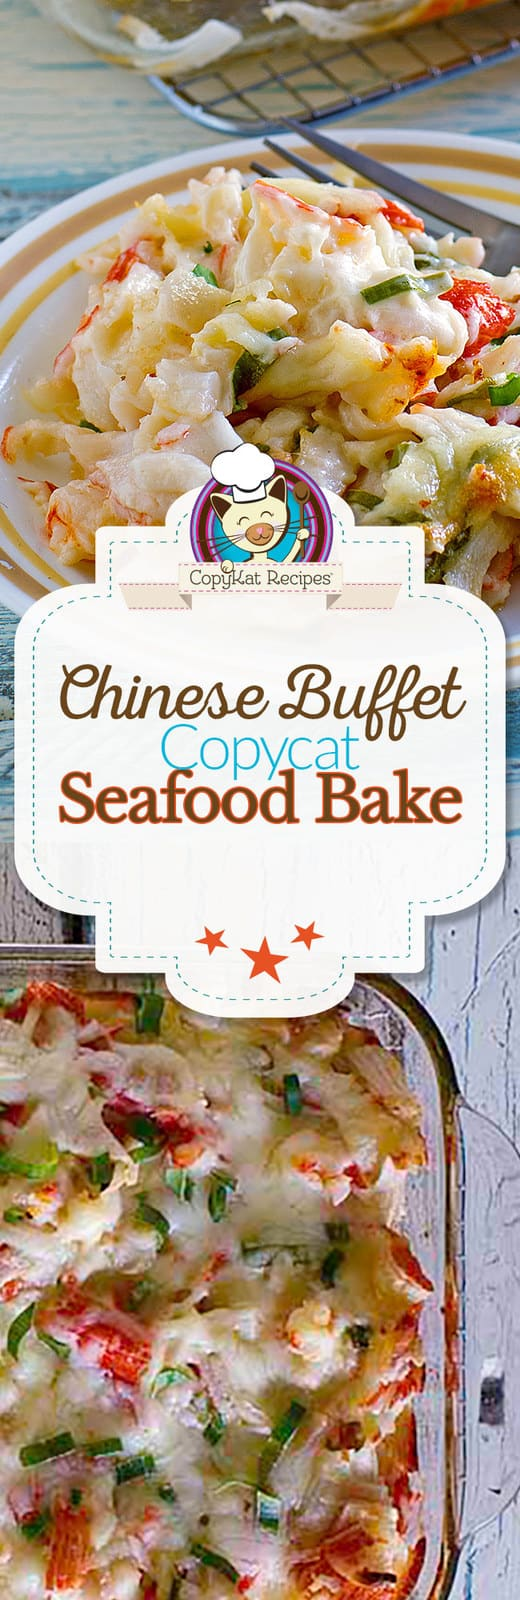 It's easy to make this seafood bake that is served at my Chinese Buffet restaurants.